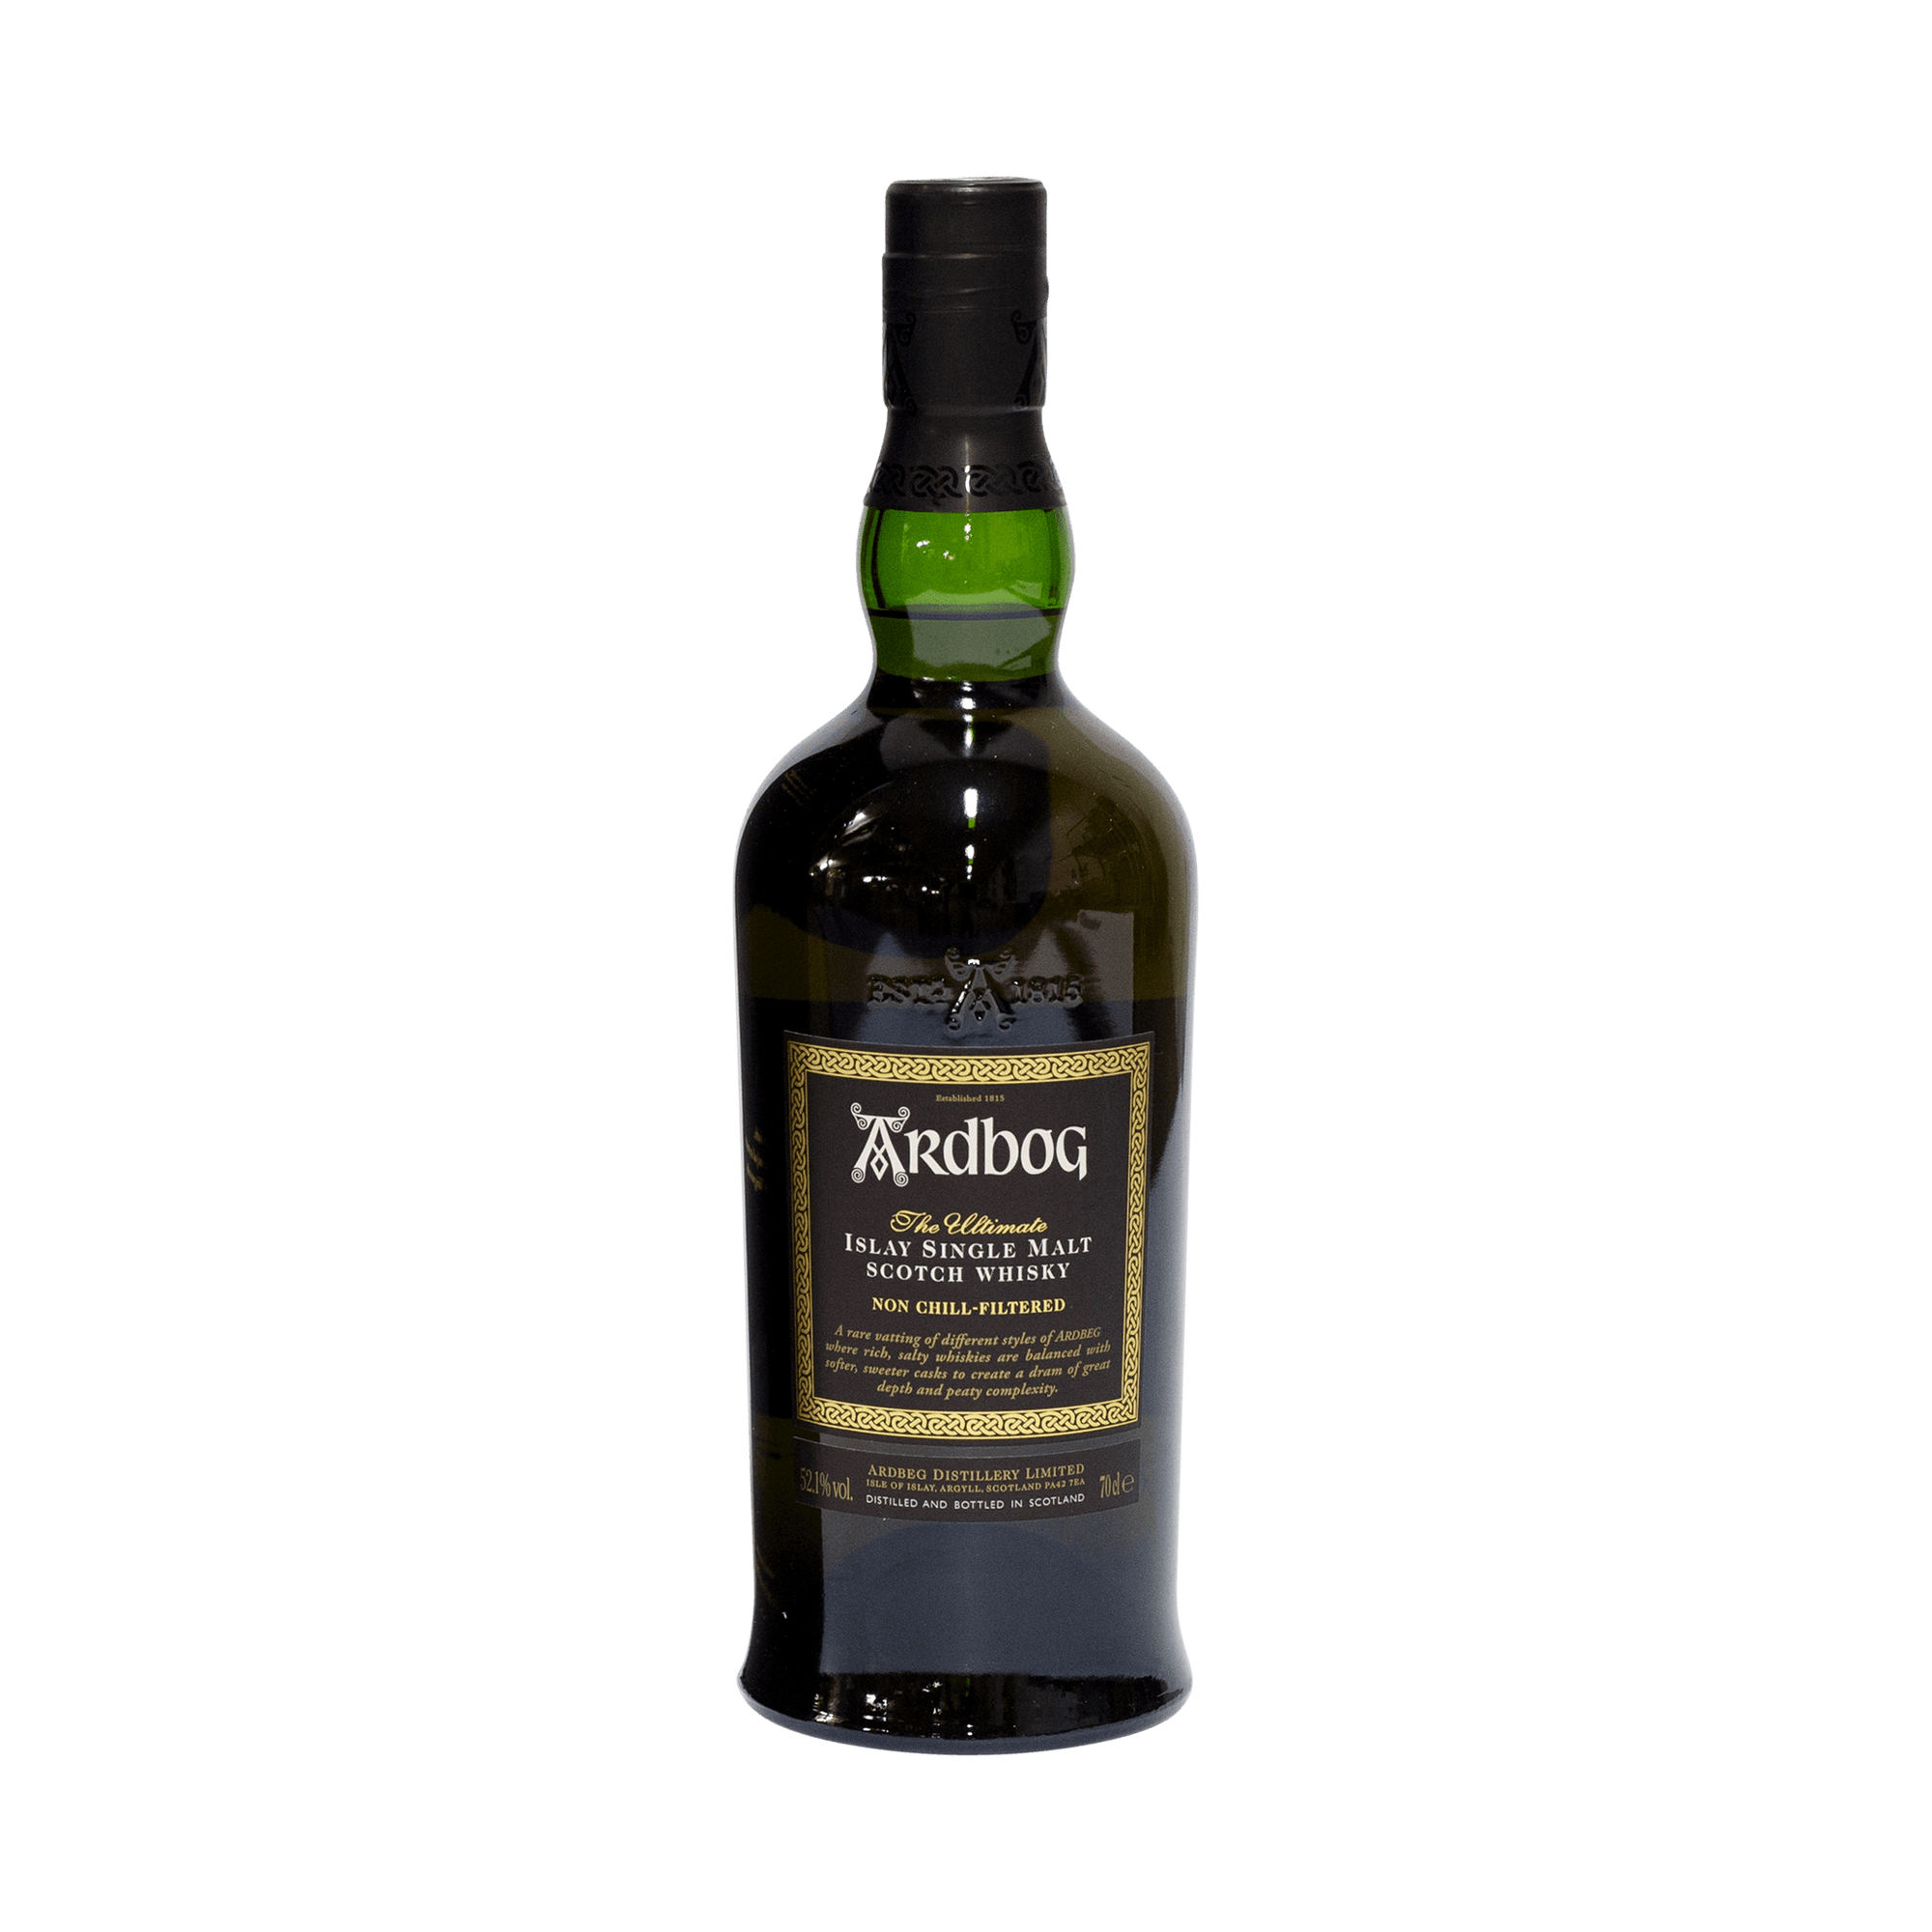 Ardbeg 2013 Ardbog Limited Edition 52.10%